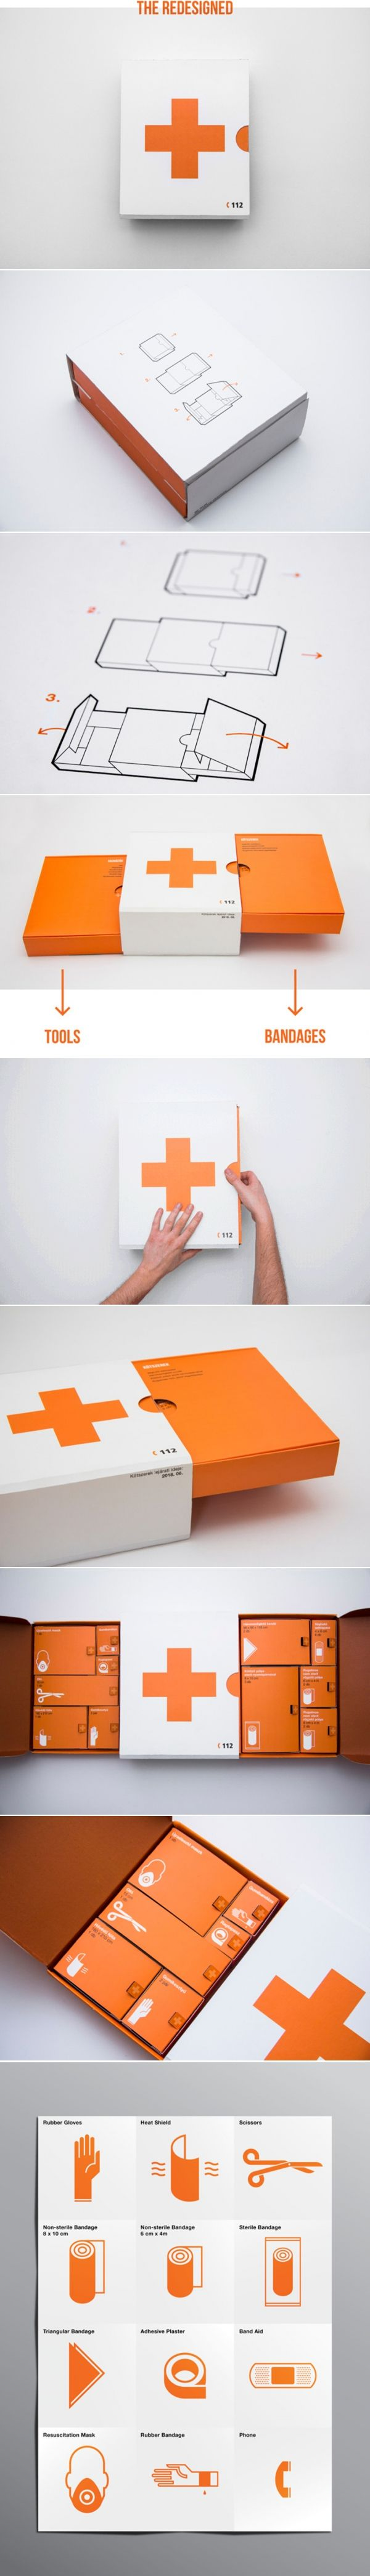 Concept: First Aid Kit - via https://www.behance.net/gallery/First-Aid-Kit/10177673